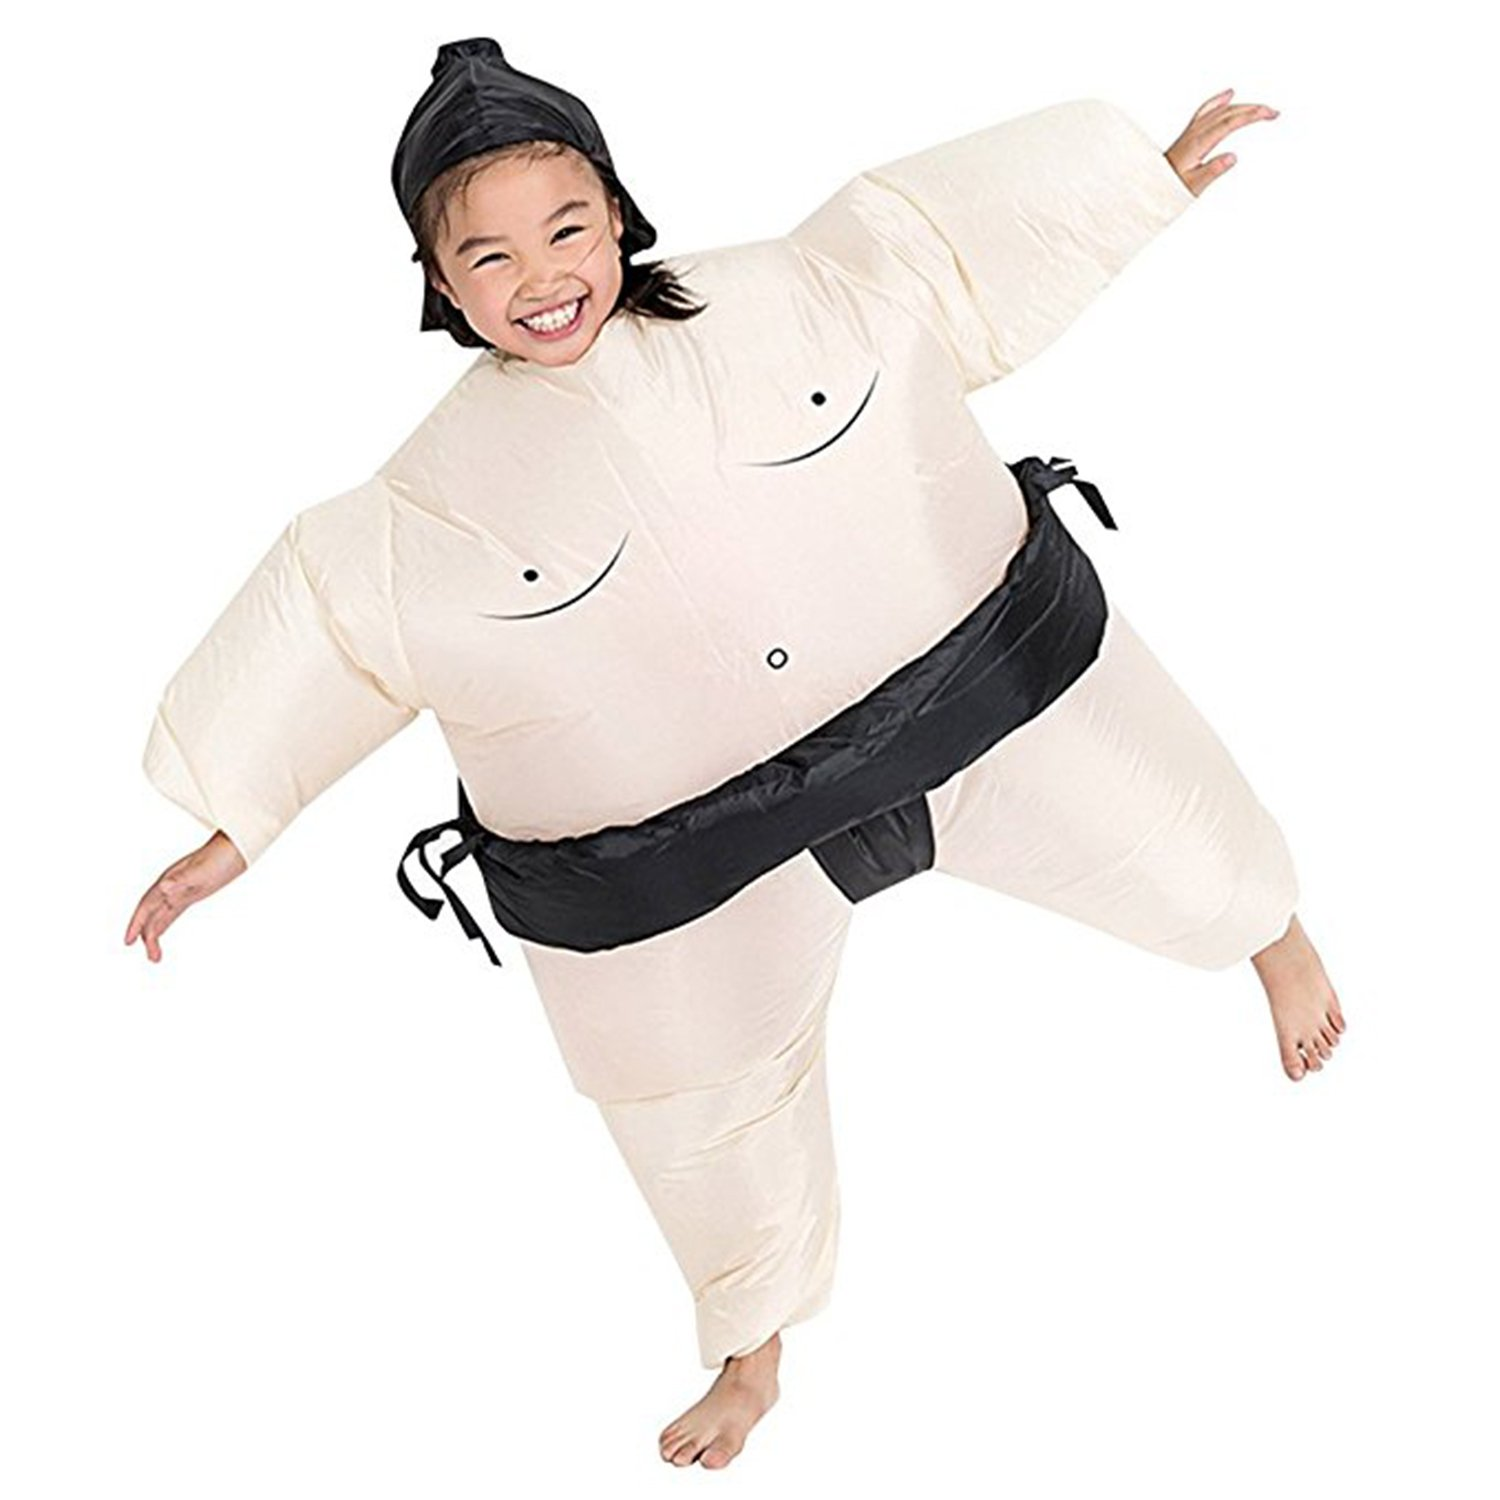 Wecloth Inflatable Suit Wrestler Wrestling Suits Colorful Sumo Inflatable Costume BodySuit for Adult Child